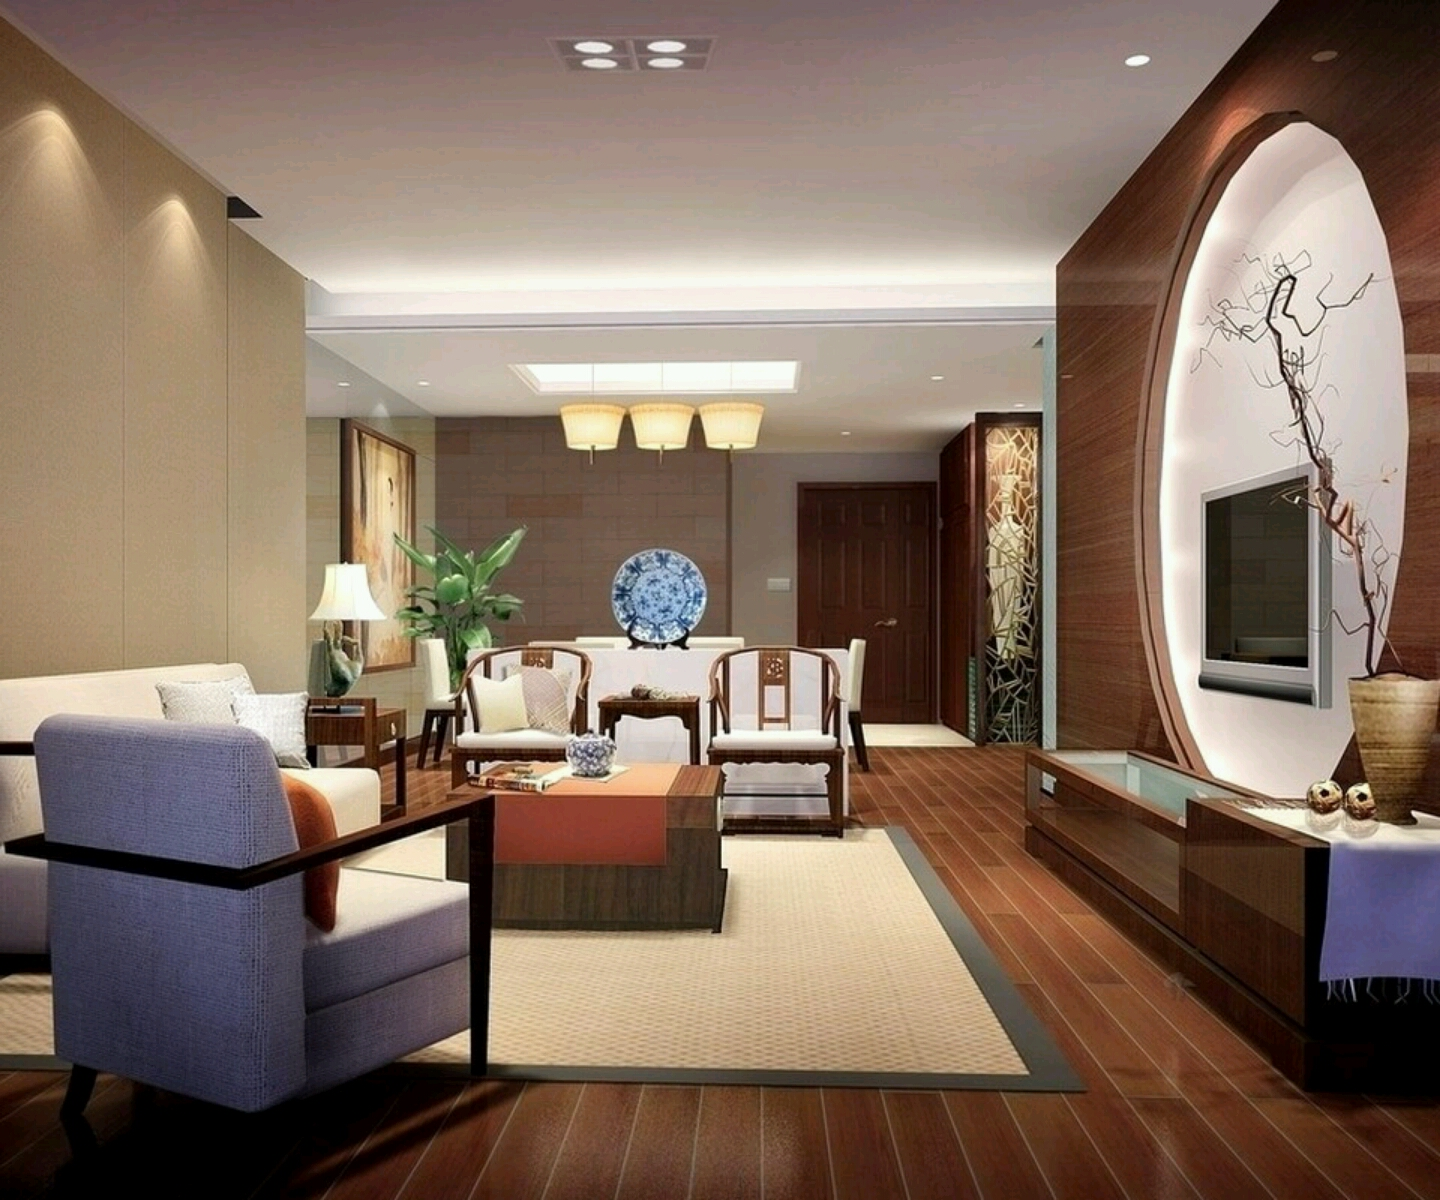 Luxury homes interior decoration living room designs ideas for New house interior design